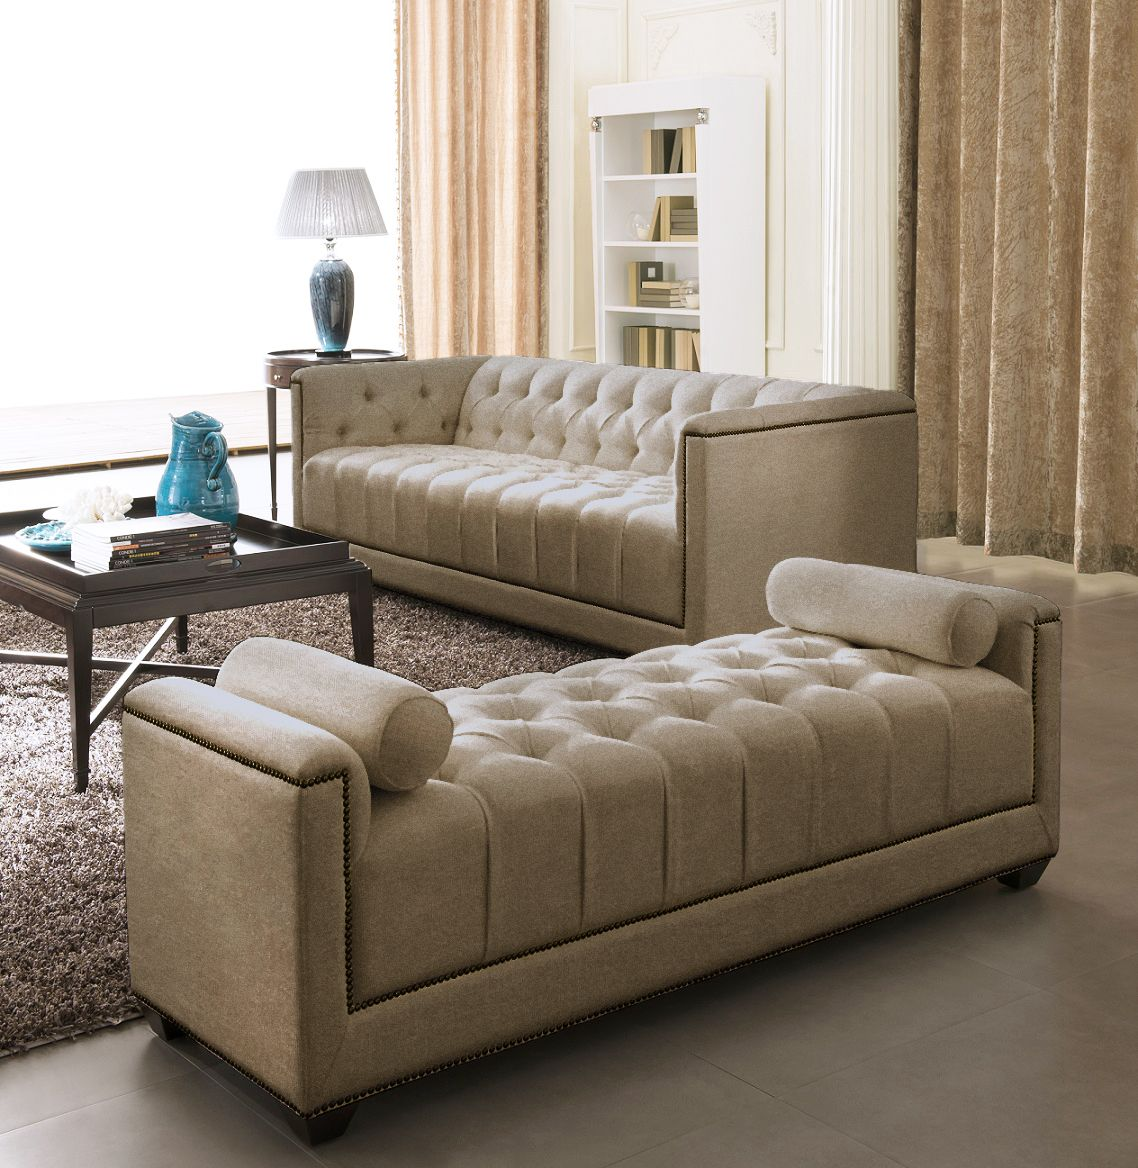 Fabric Sofa Set - Eden - Gold | Home inspiration | Pinterest | Sofa ...